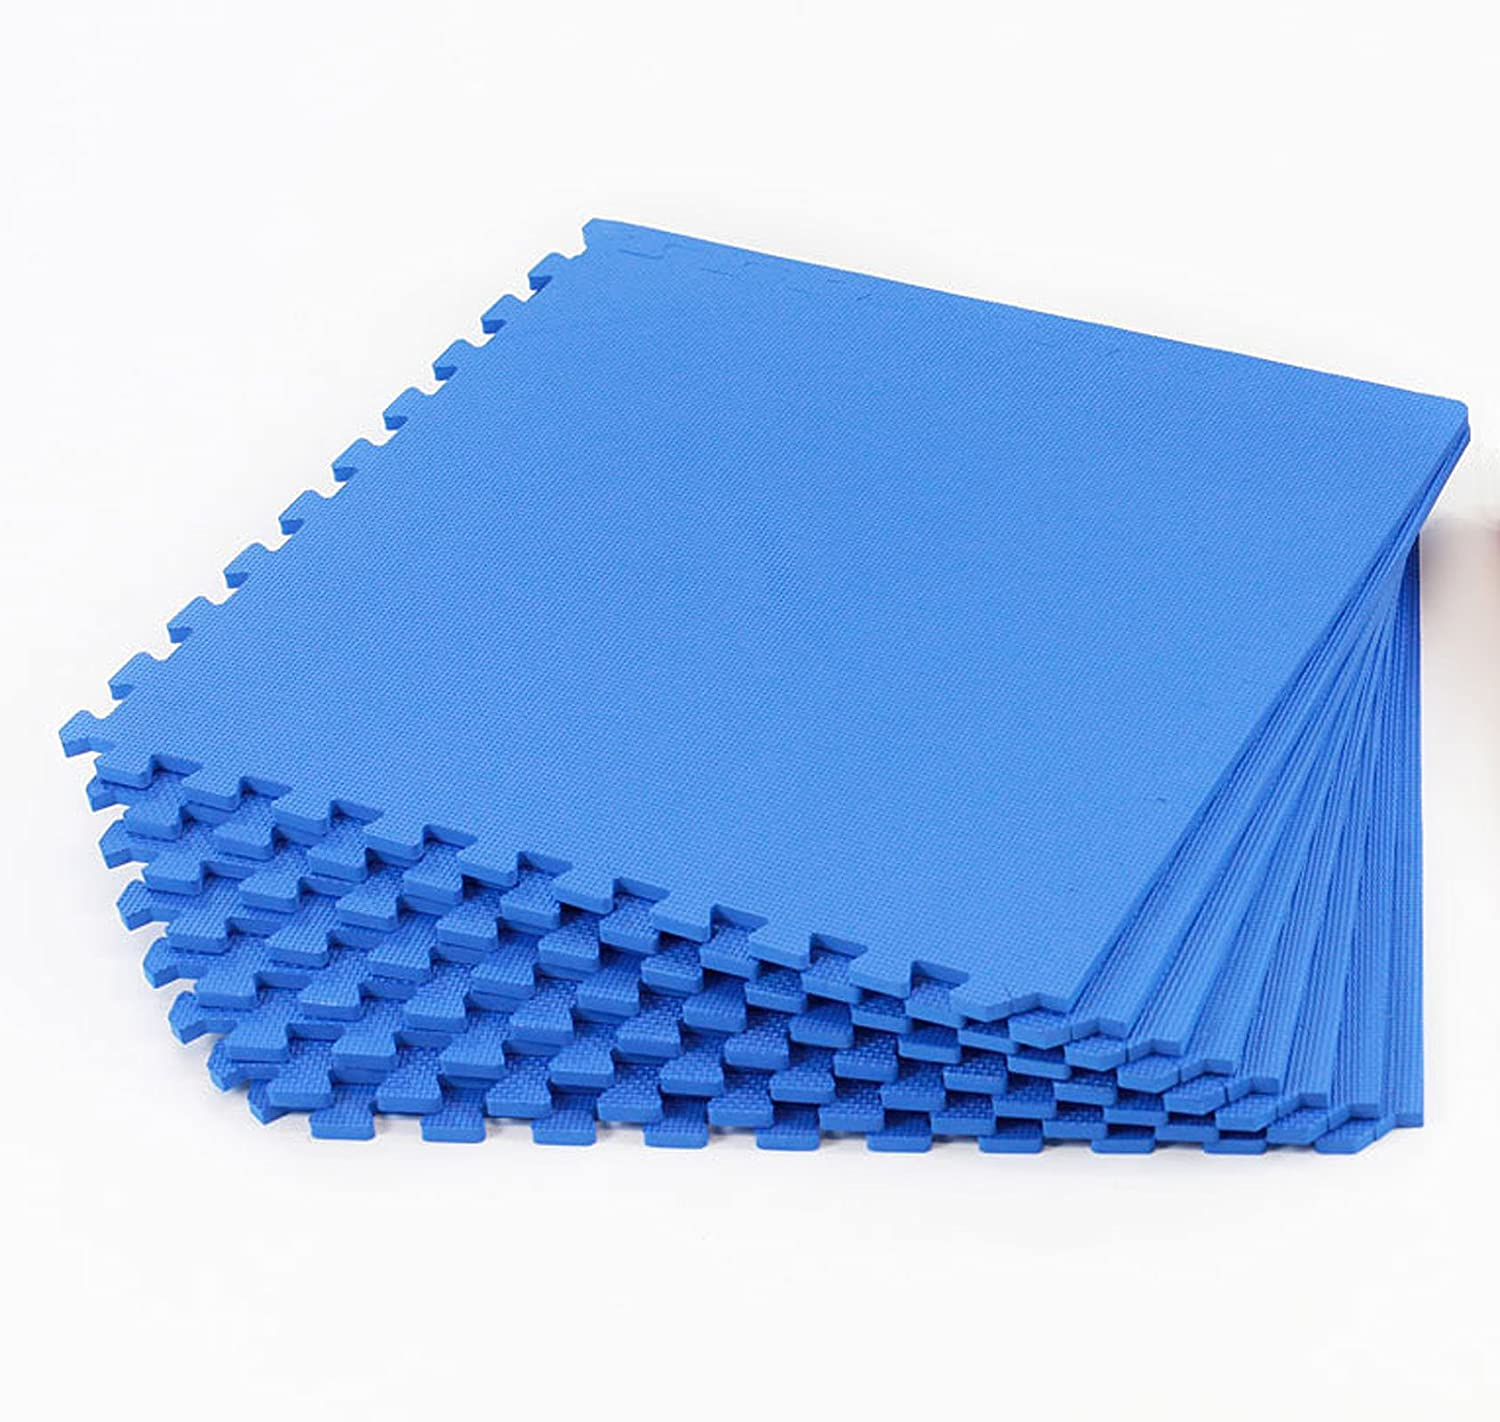 Interlocking Blue Gym Play mats 8 pack 32 sq ft Amazon